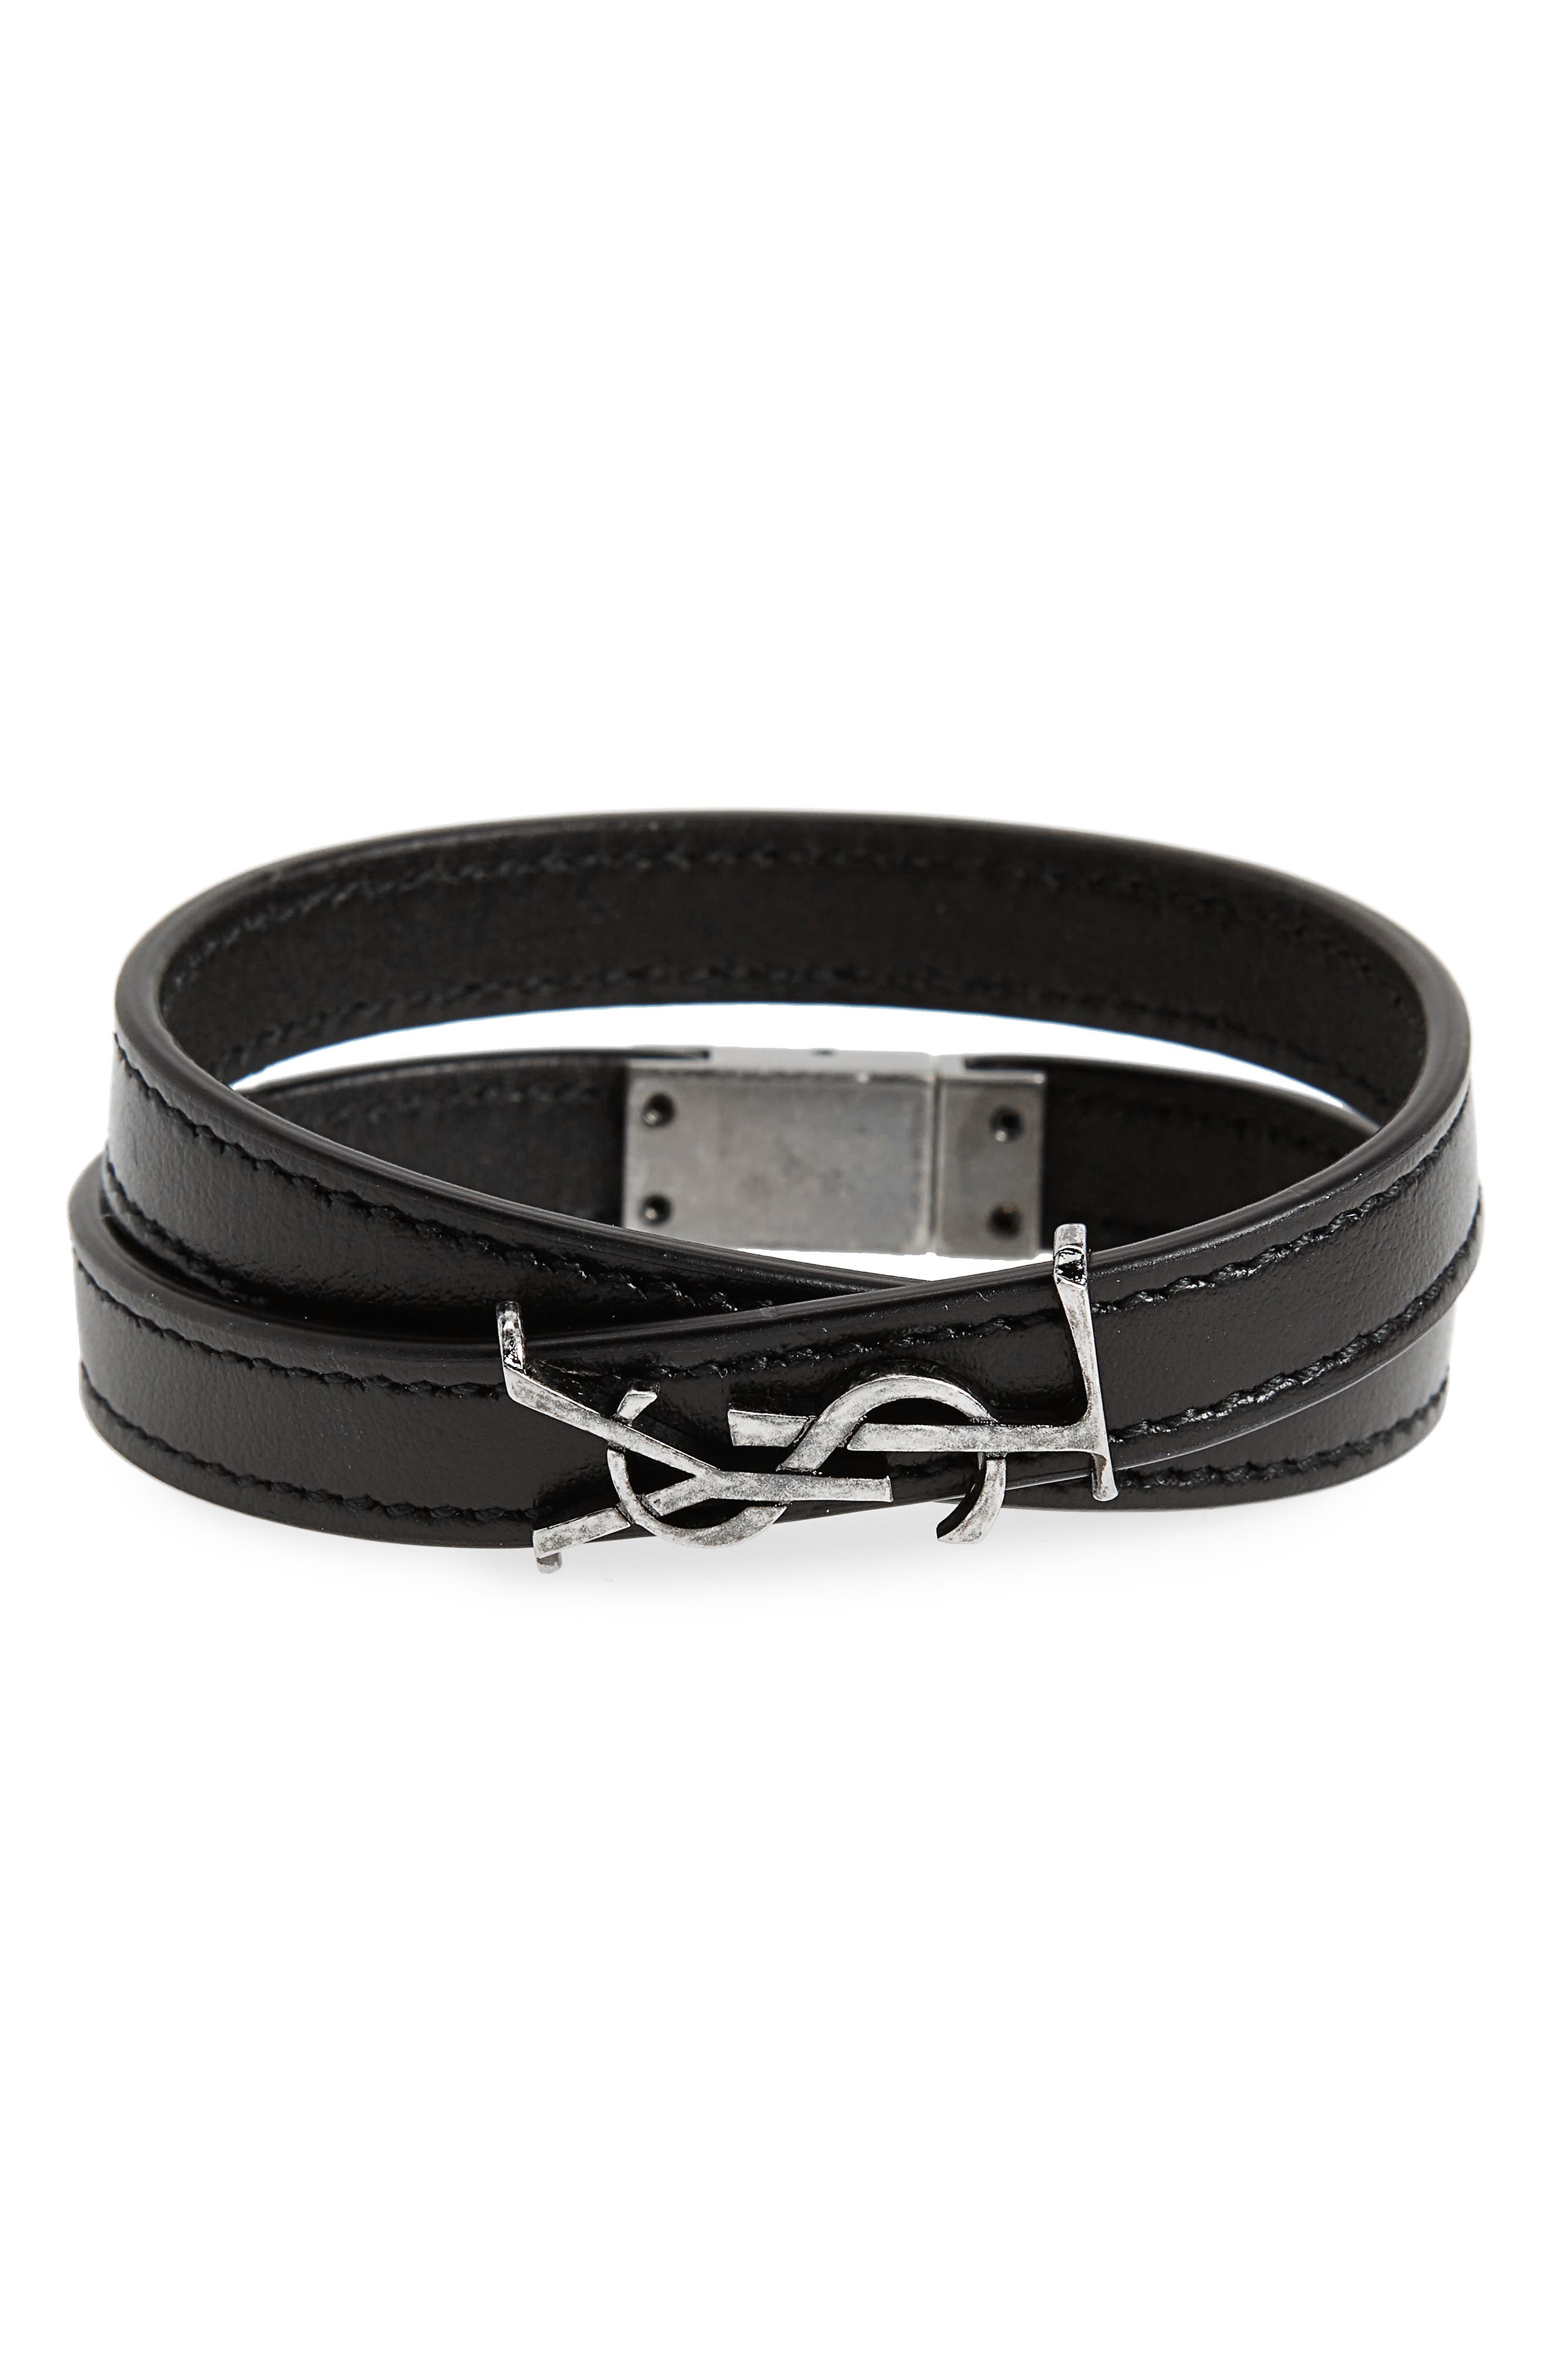 YSL Leather Bracelet,                         Main,                         color, Nero